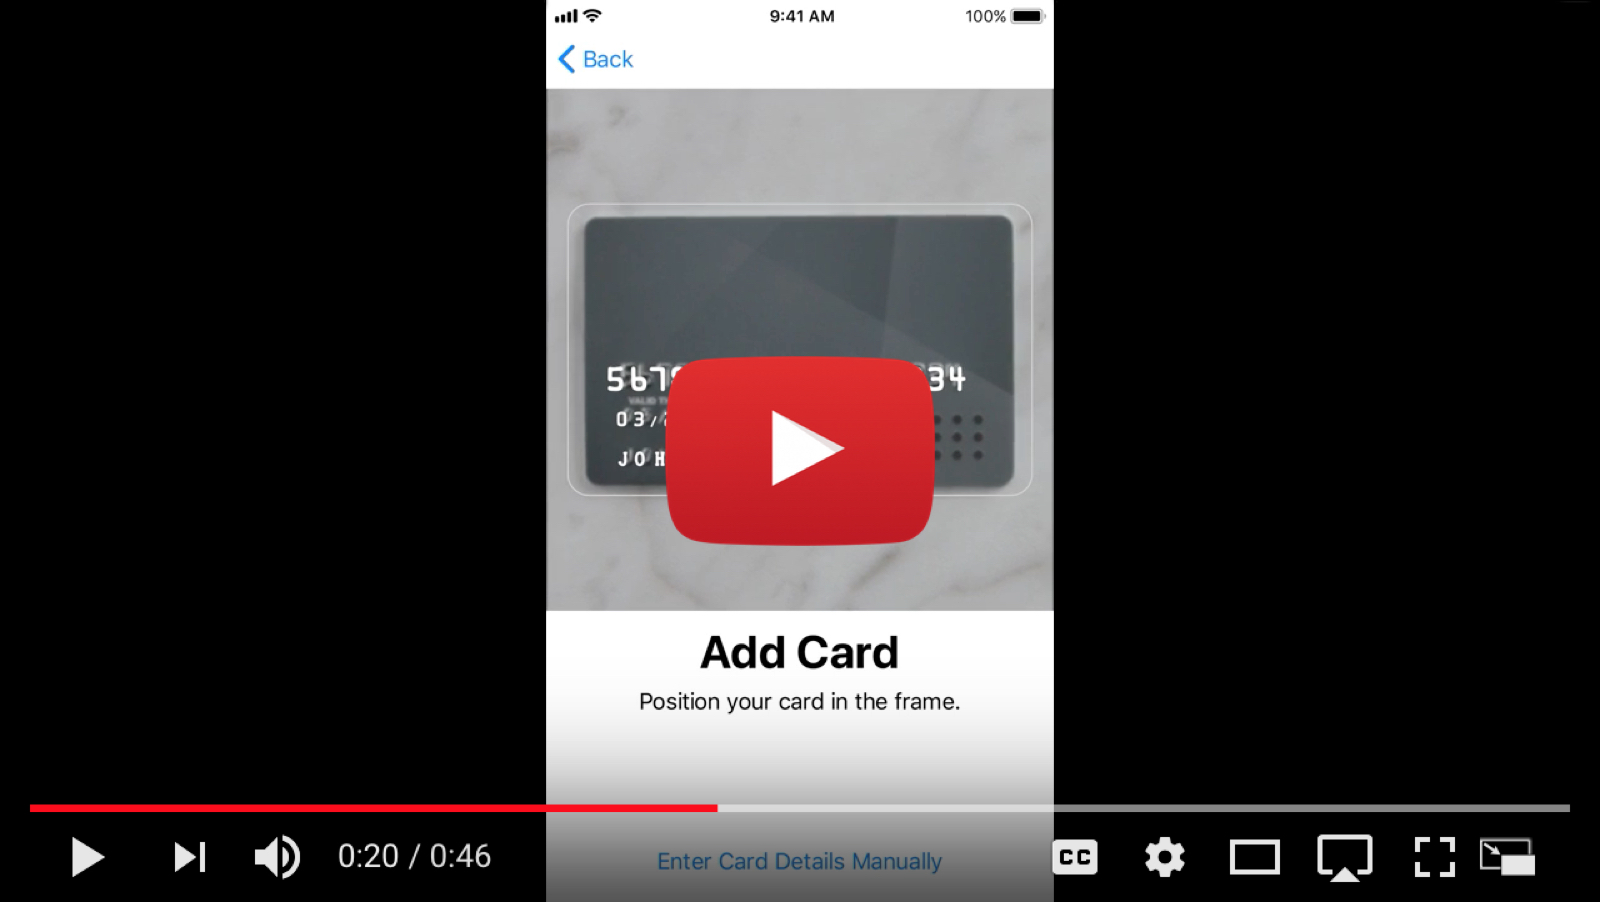 Apple Posted Apple Pay How To Videos on YouTube